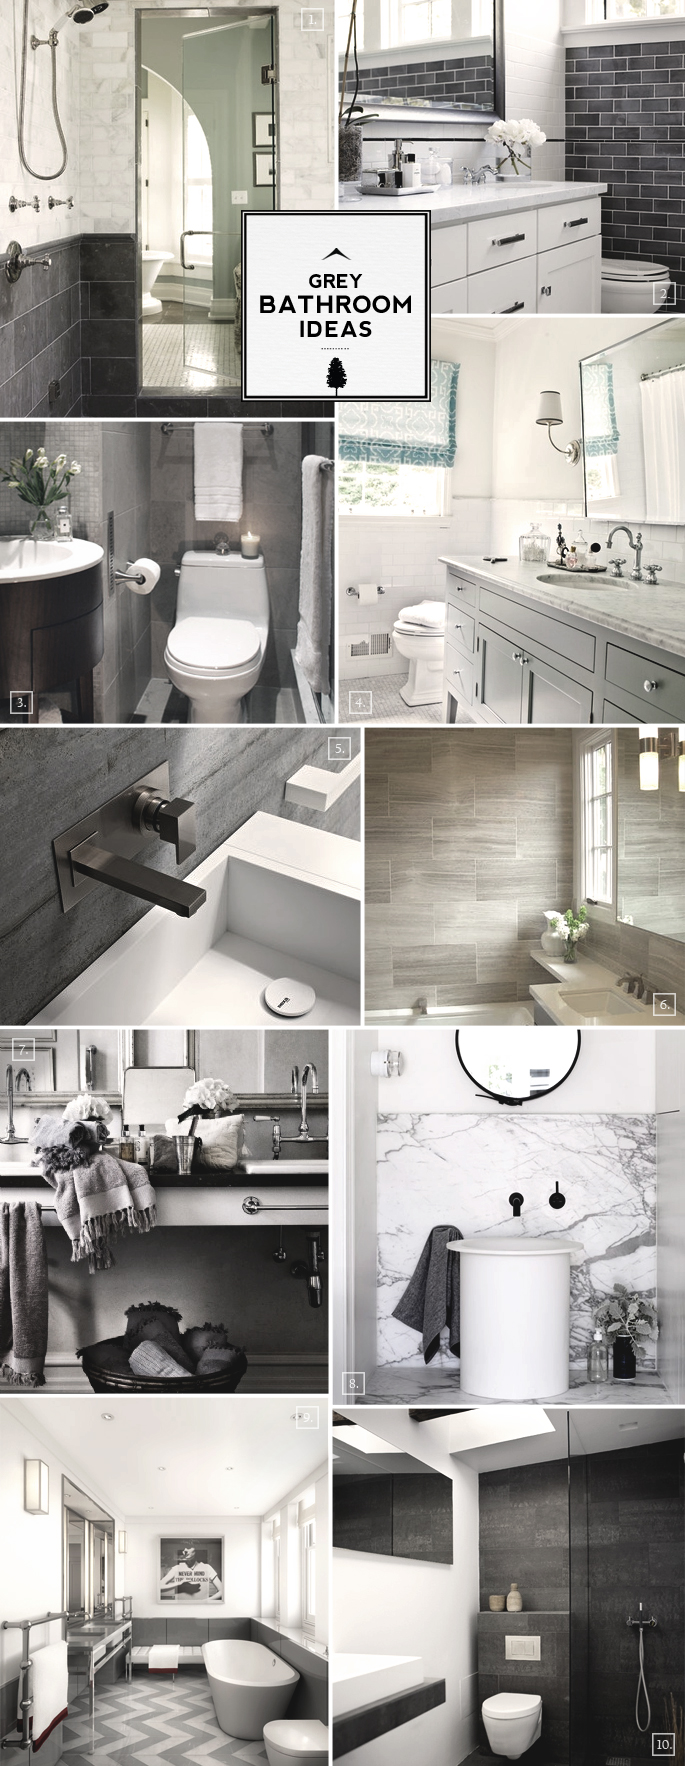 Grey Bathroom Ideas and Design Styles | Home Tree Atlas